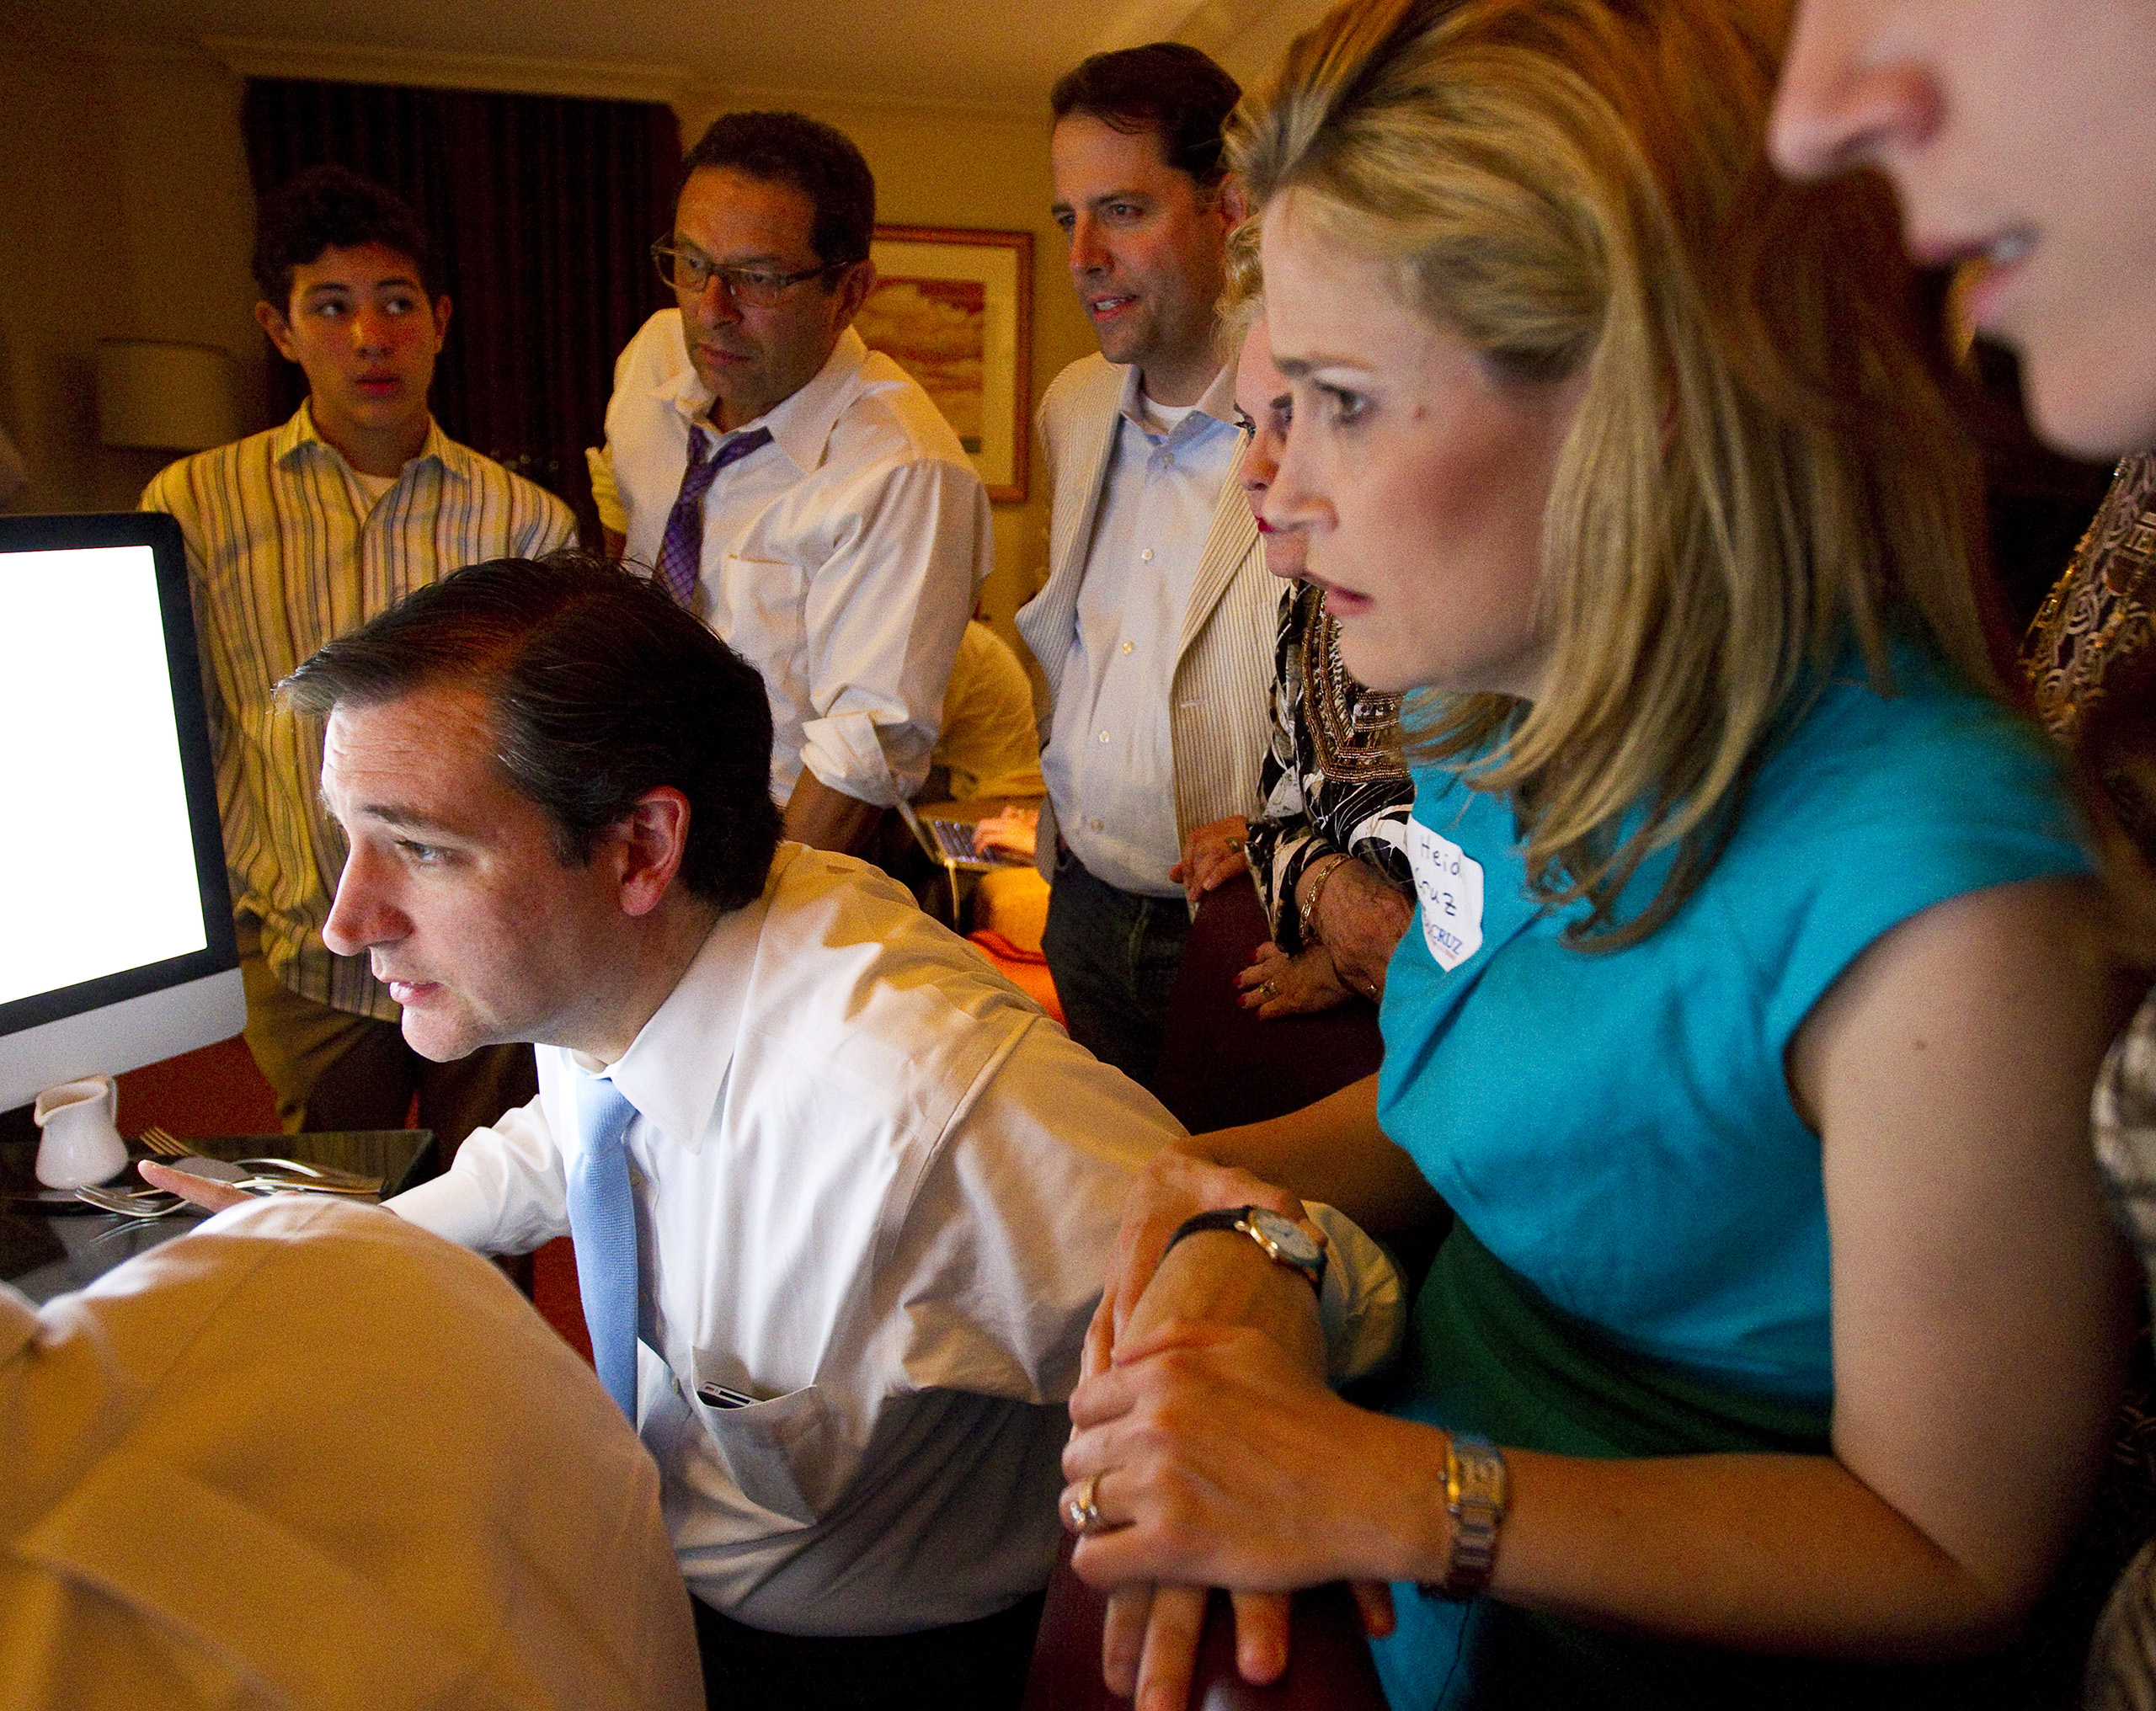 Ted Cruz, Republican candidate for U.S. Senate, holds hands with his wife Heidi Cruz as he watches polls with his campaign team, friends and family, May 29, 2012.